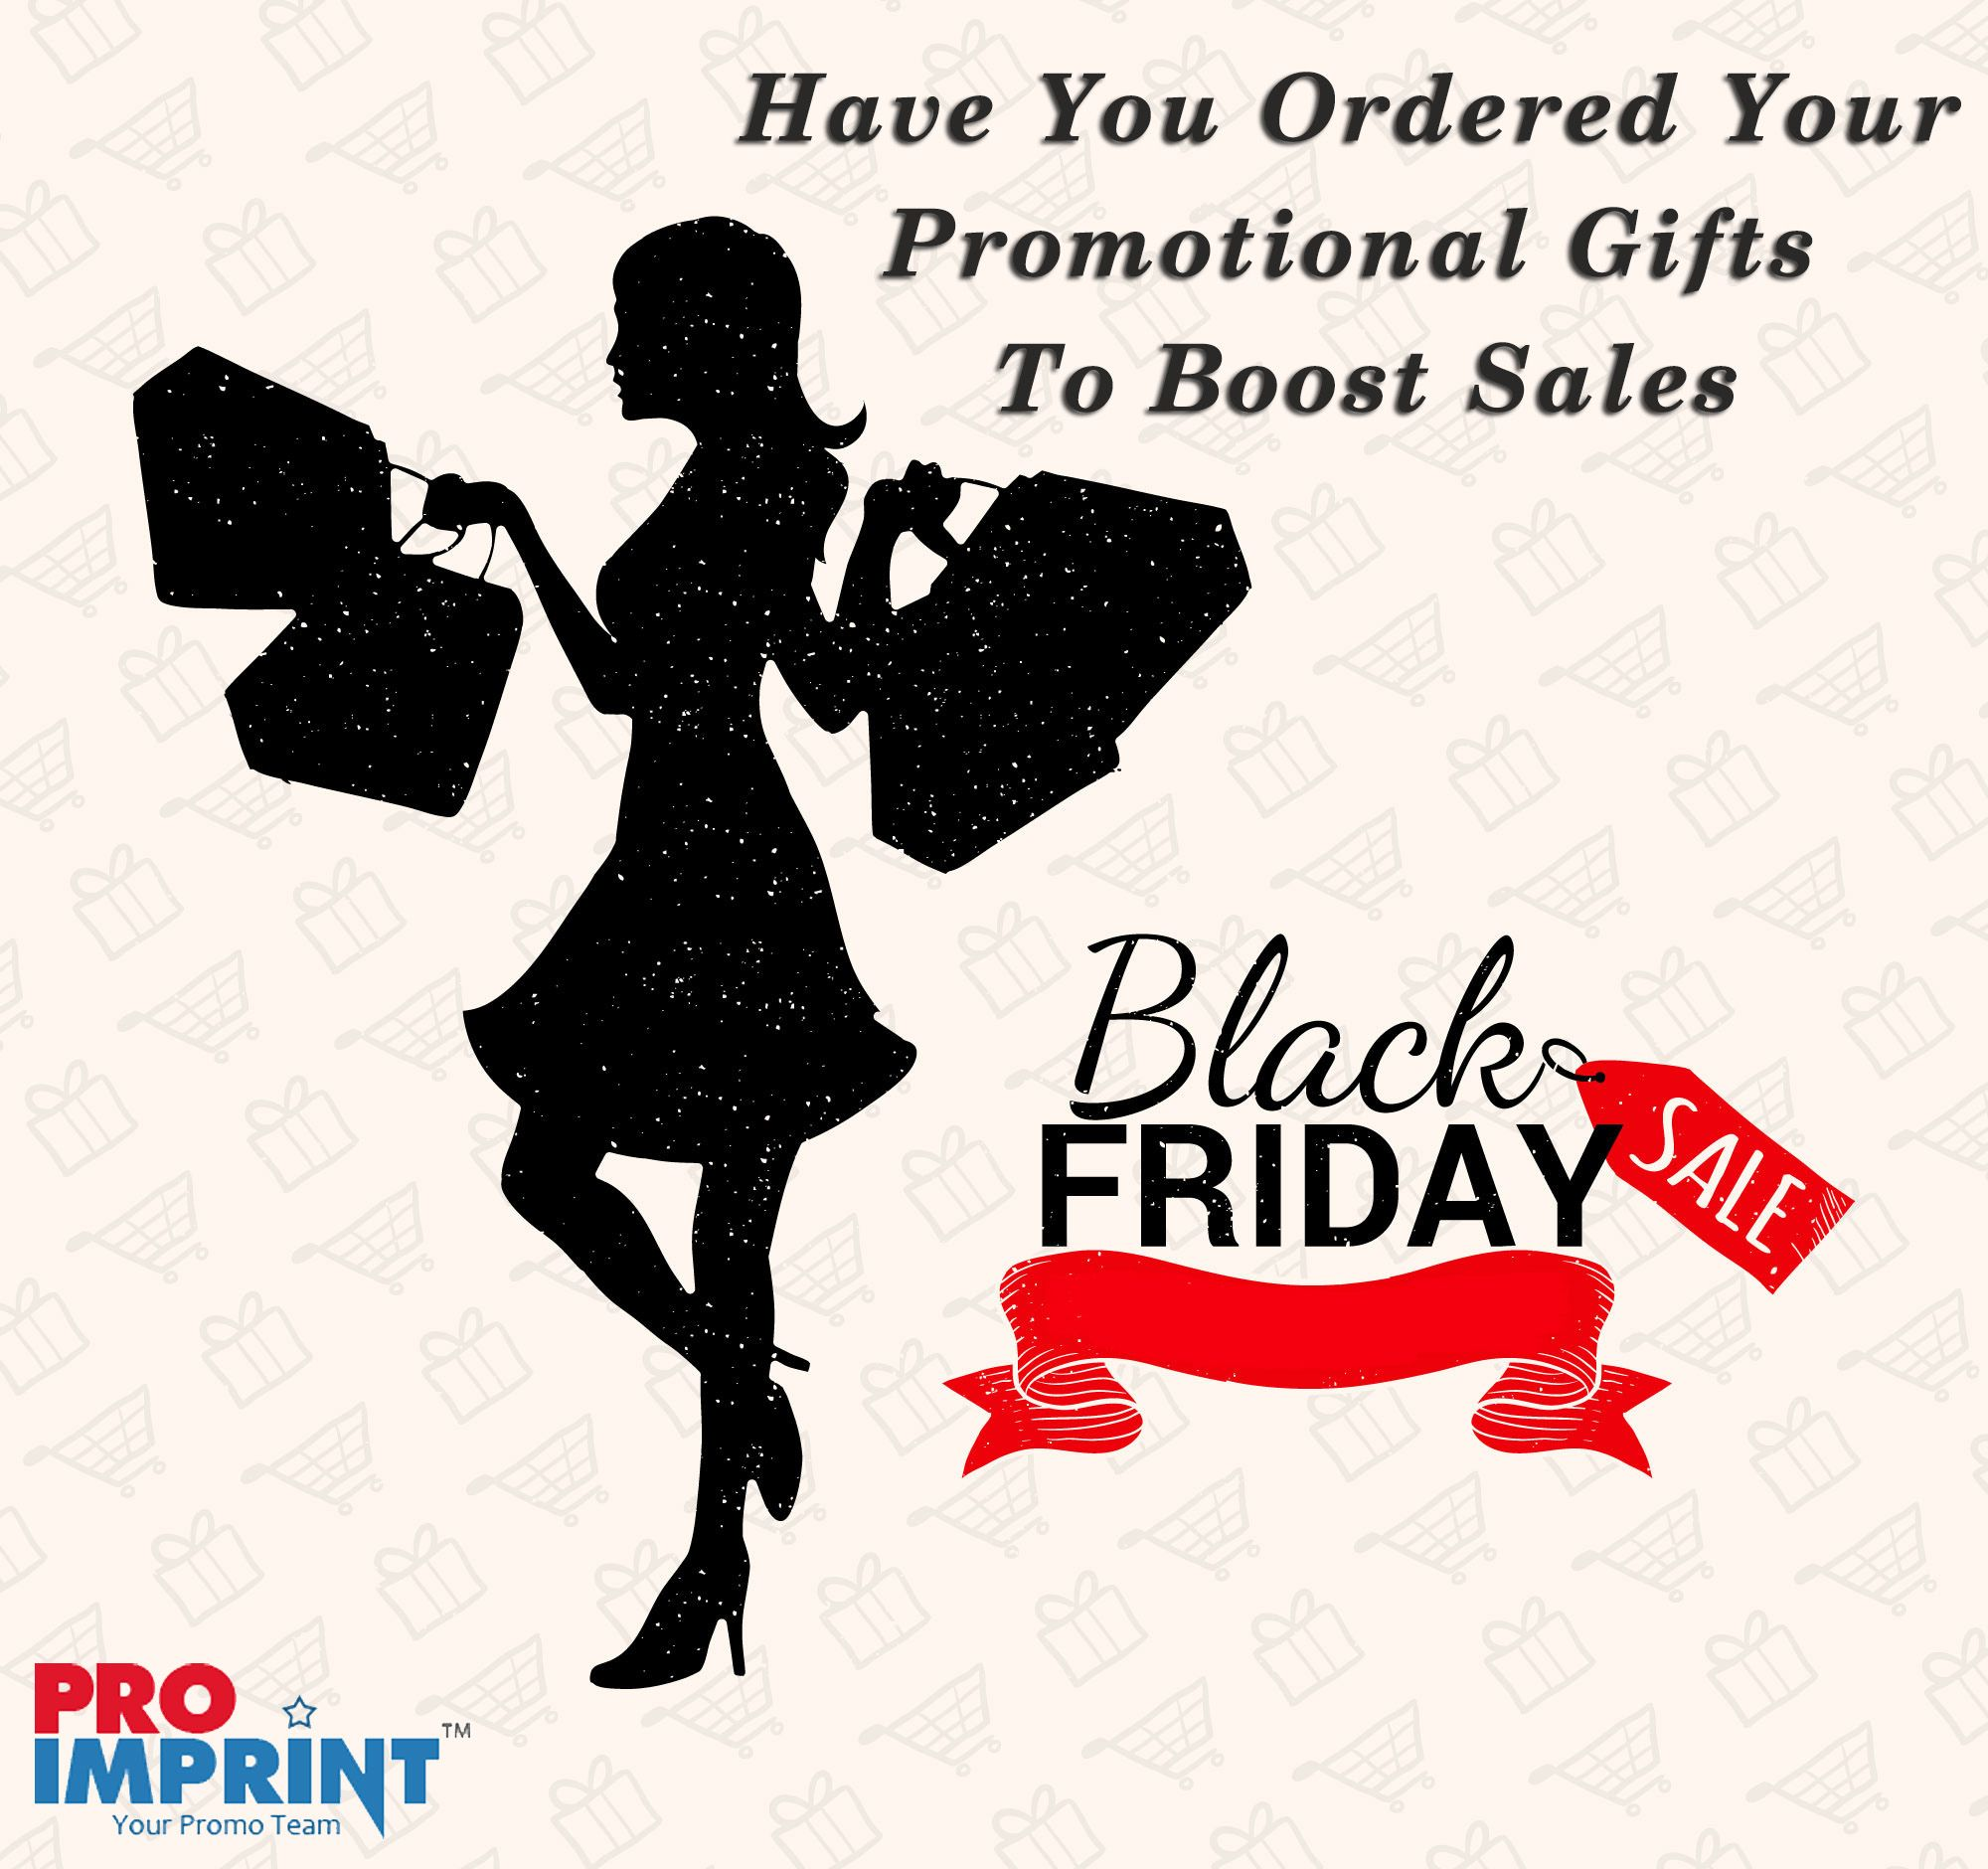 Black Friday Is Here Have You Ordered Your Promotional Gifts To Boost Sales Black Friday Design Corporate Gifts Black Friday